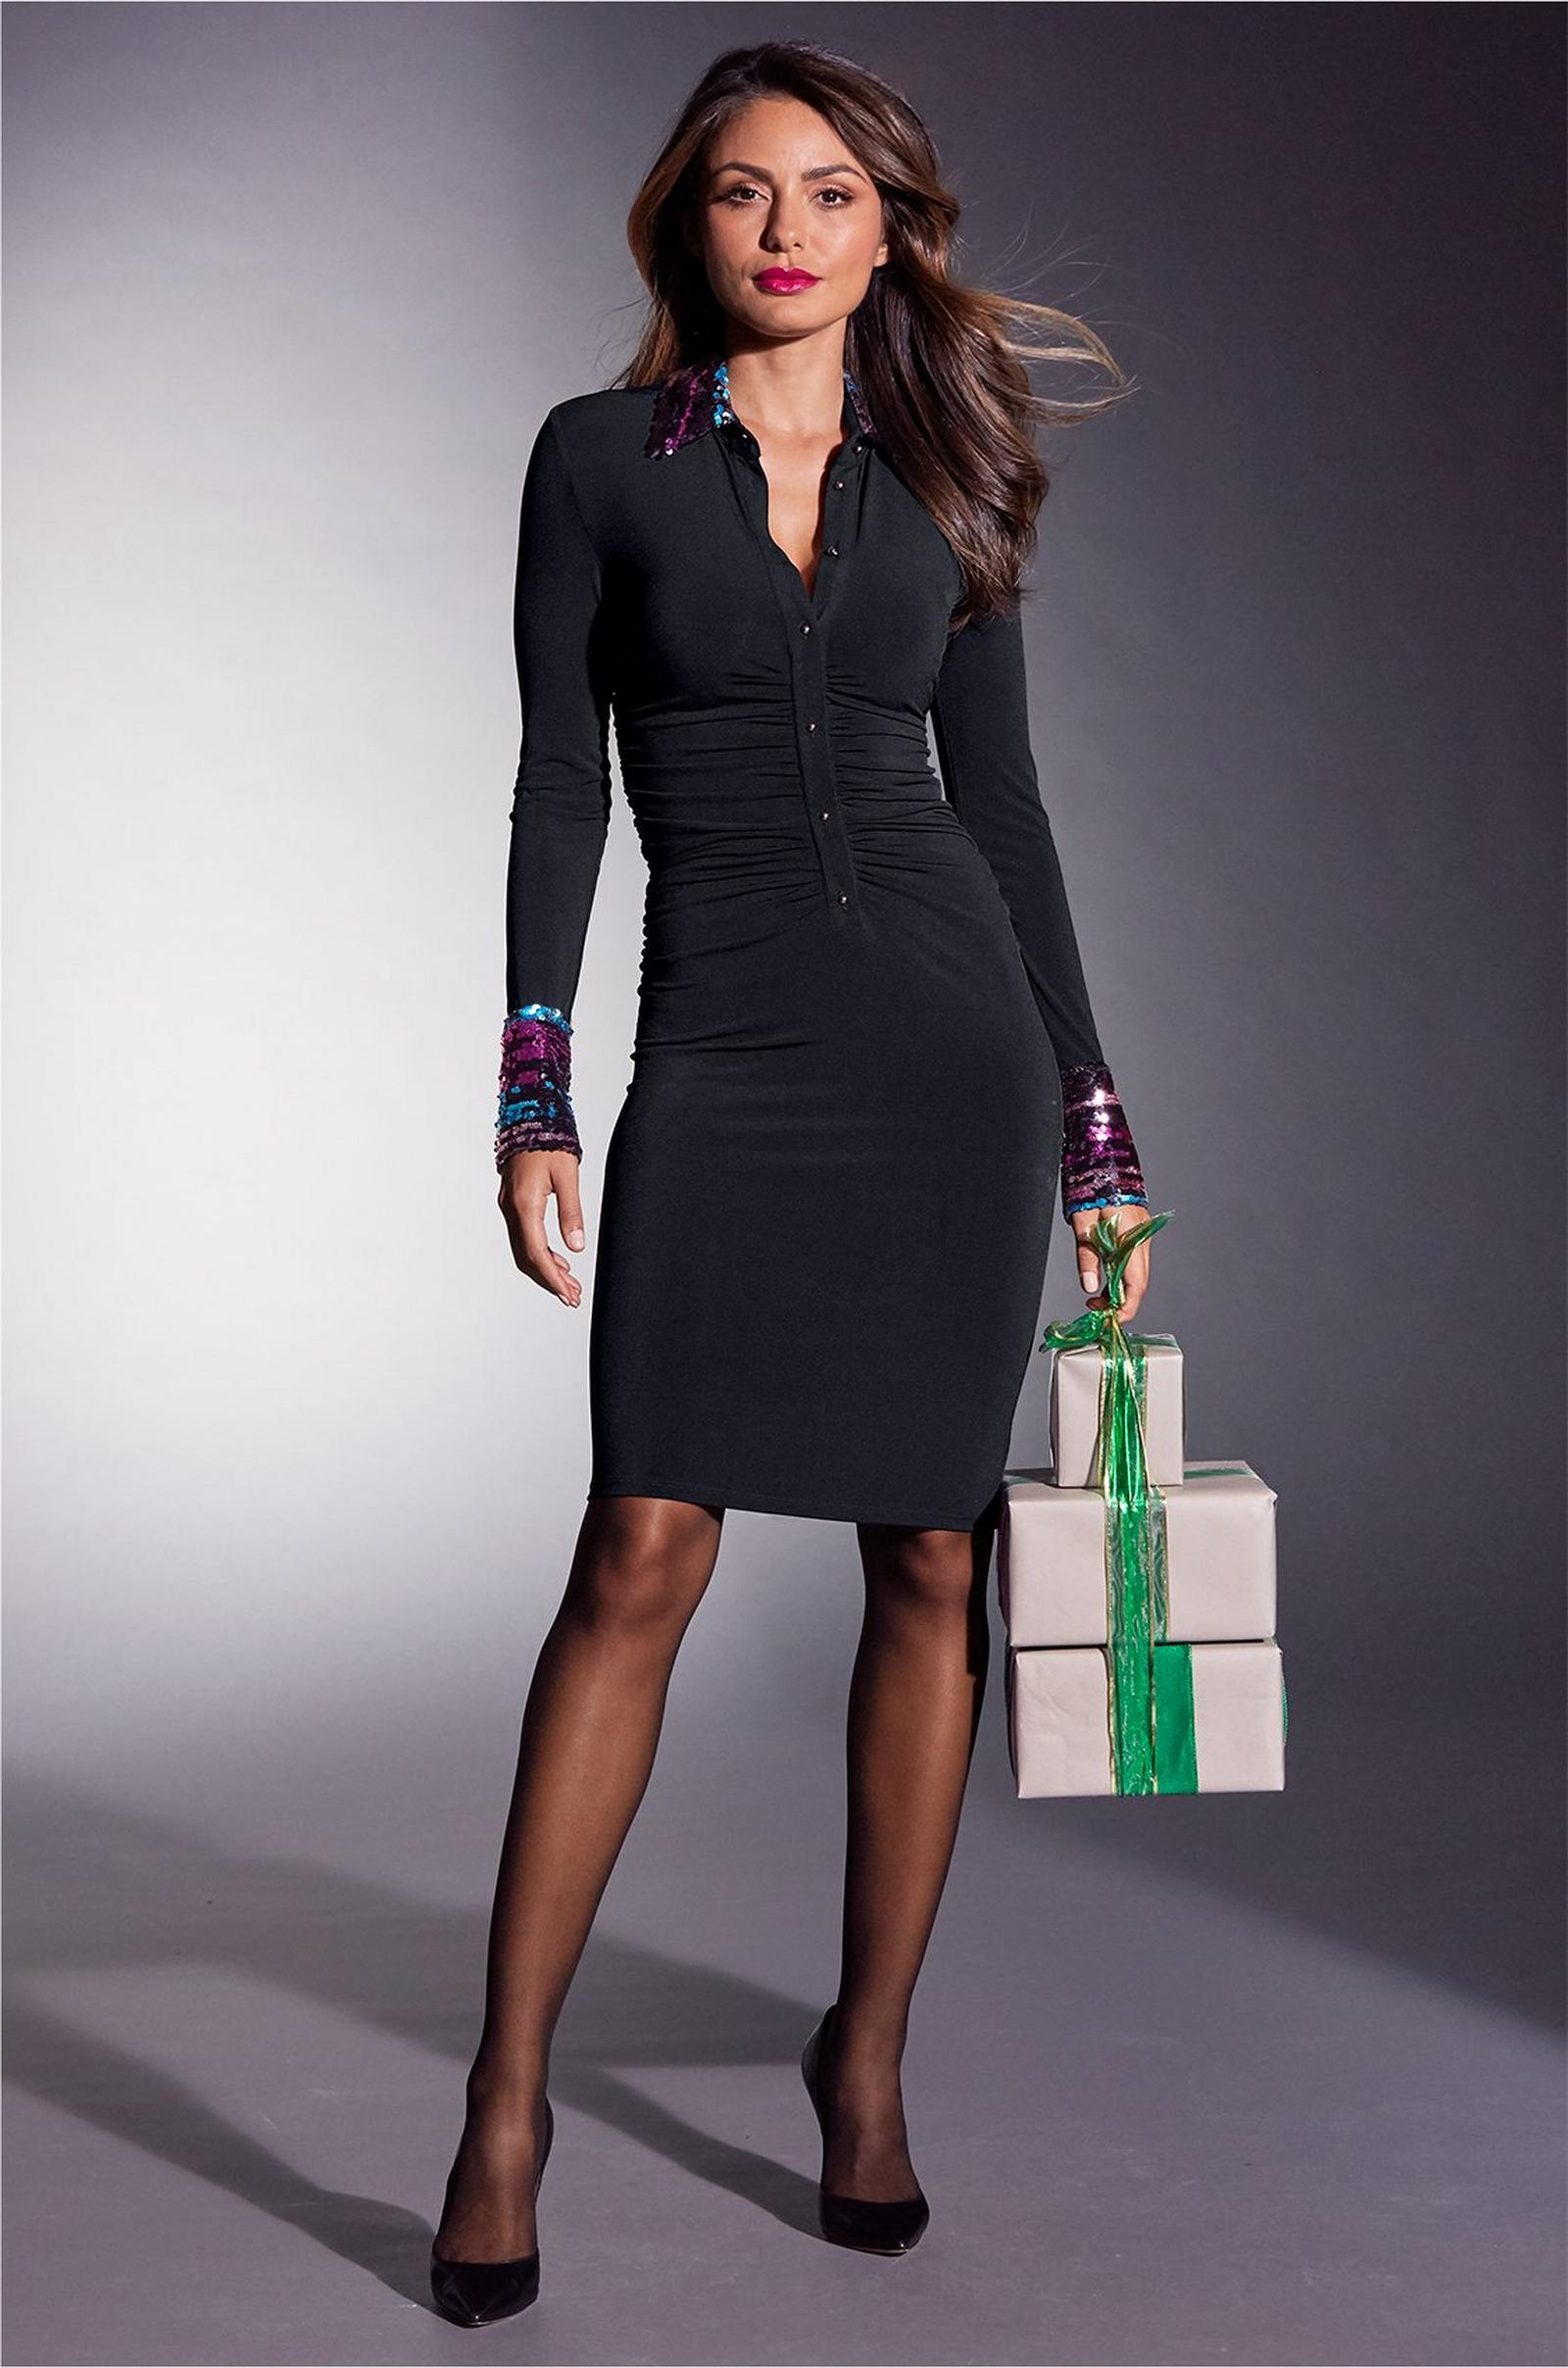 model wearing a black dress with sequined collar and cuffs while holding wrapped gifts.